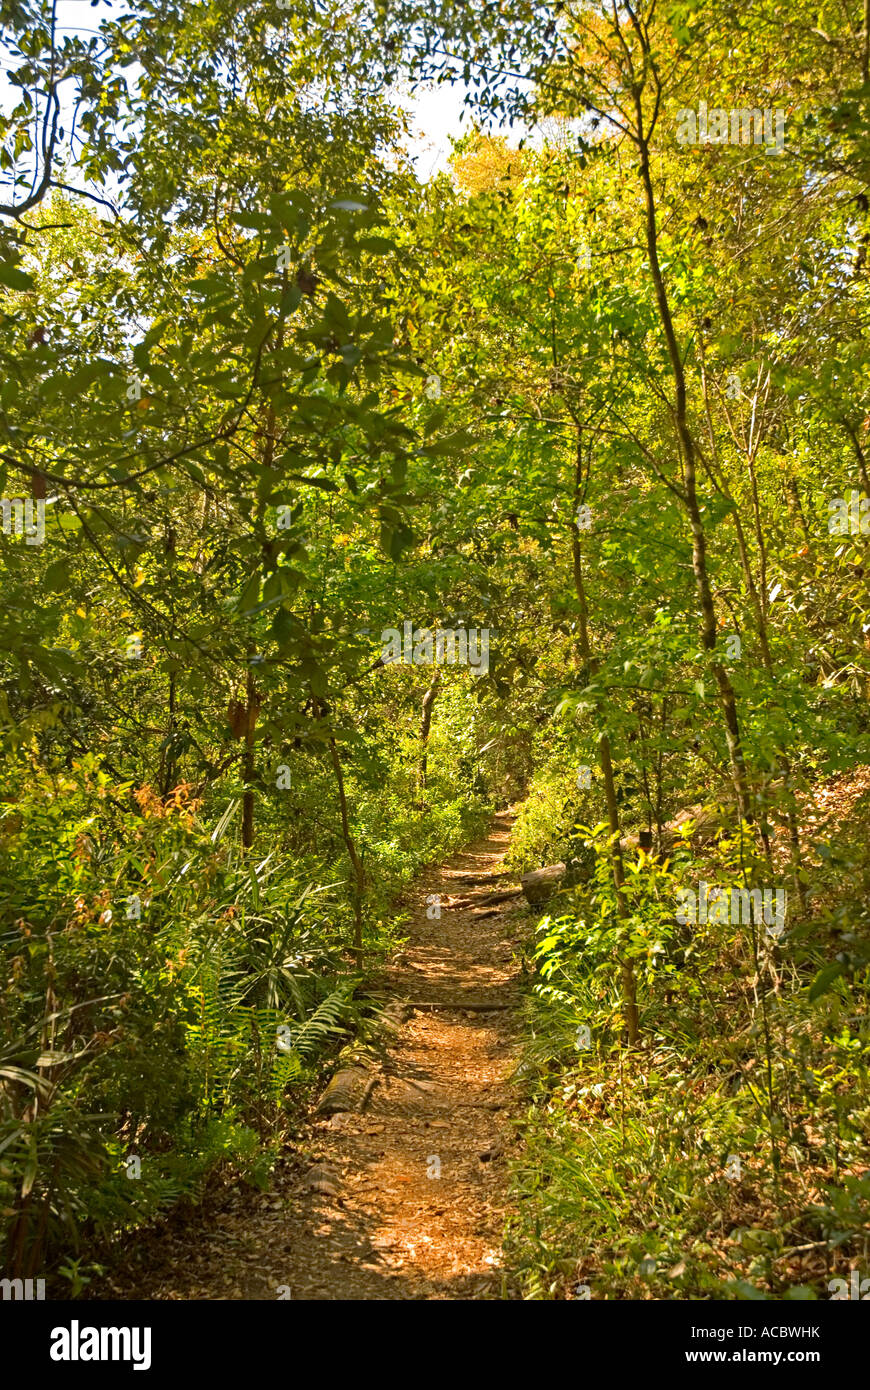 Hiking Florida trail Gold Head Branch State Park - Stock Image